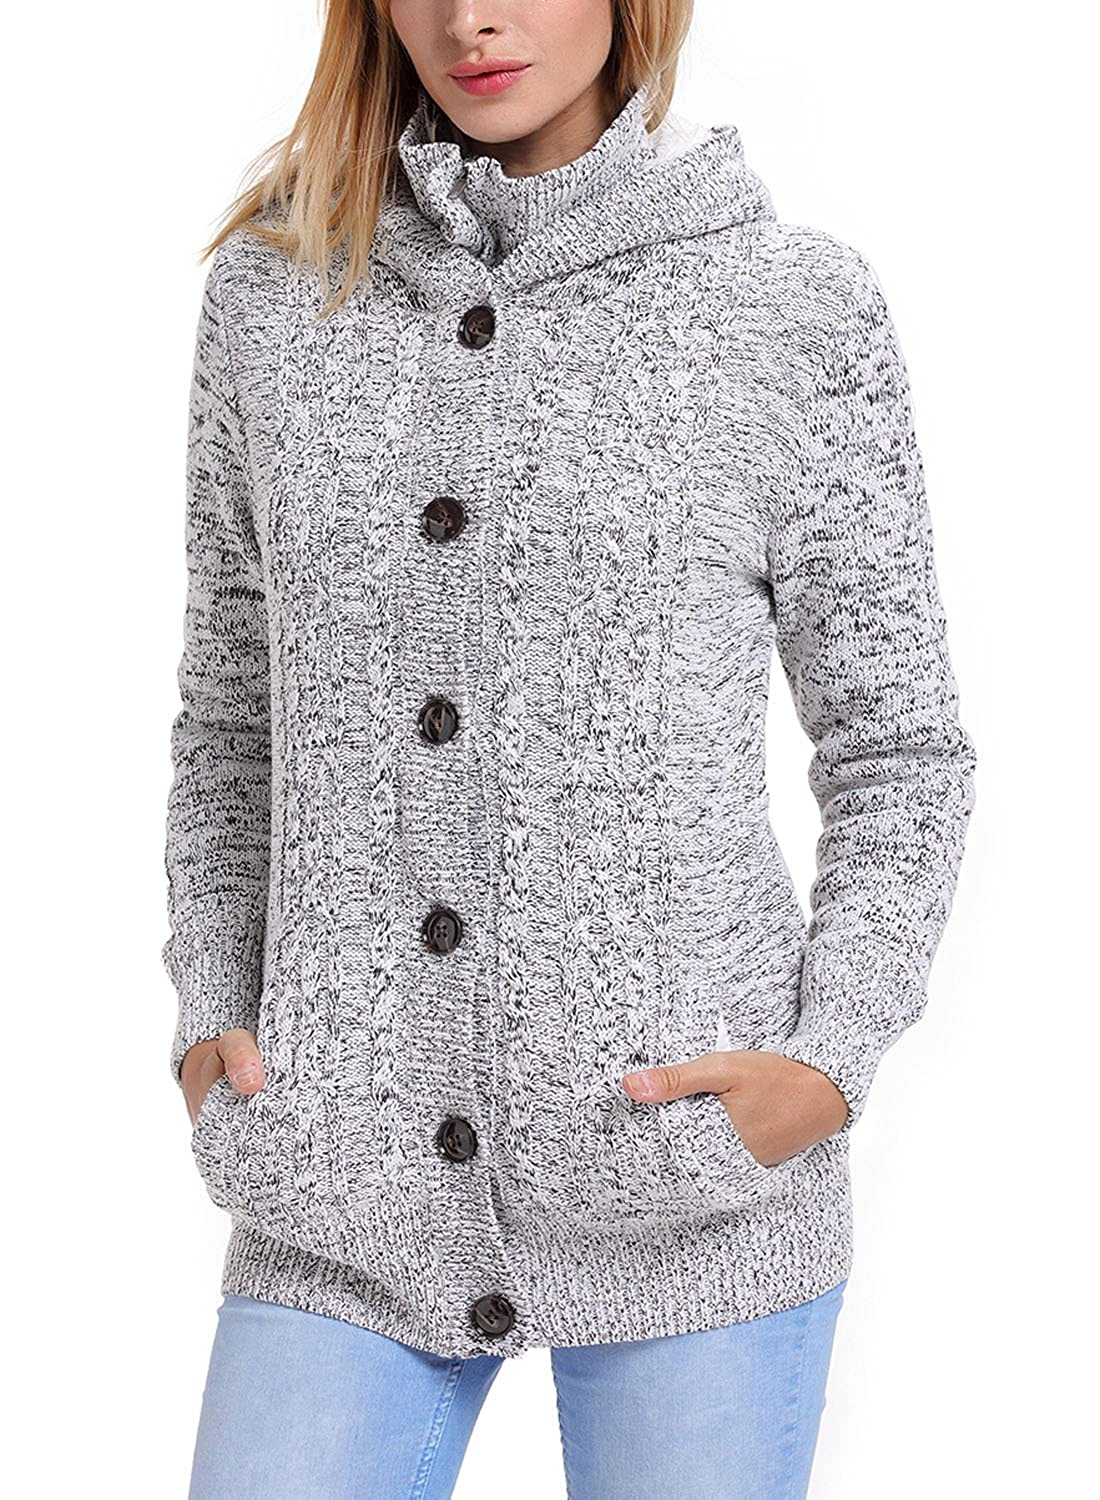 Annflat Women's Hooded Cable Knit Button Down Cardigan Sweaters ...